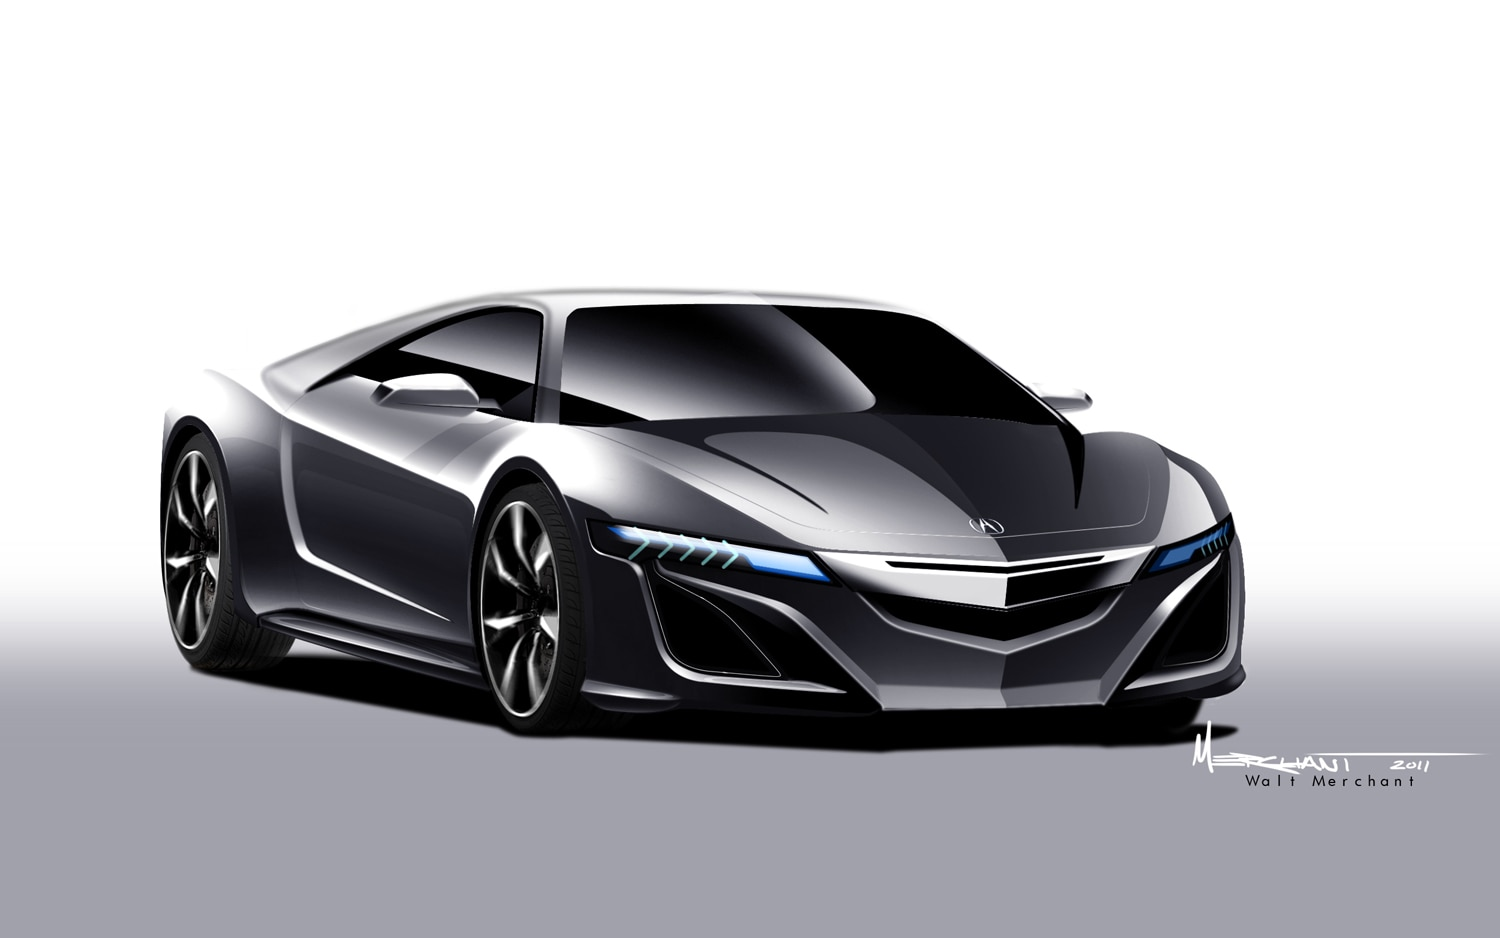 Report: New Acura NSX to Have 400 HP, Roadster Version